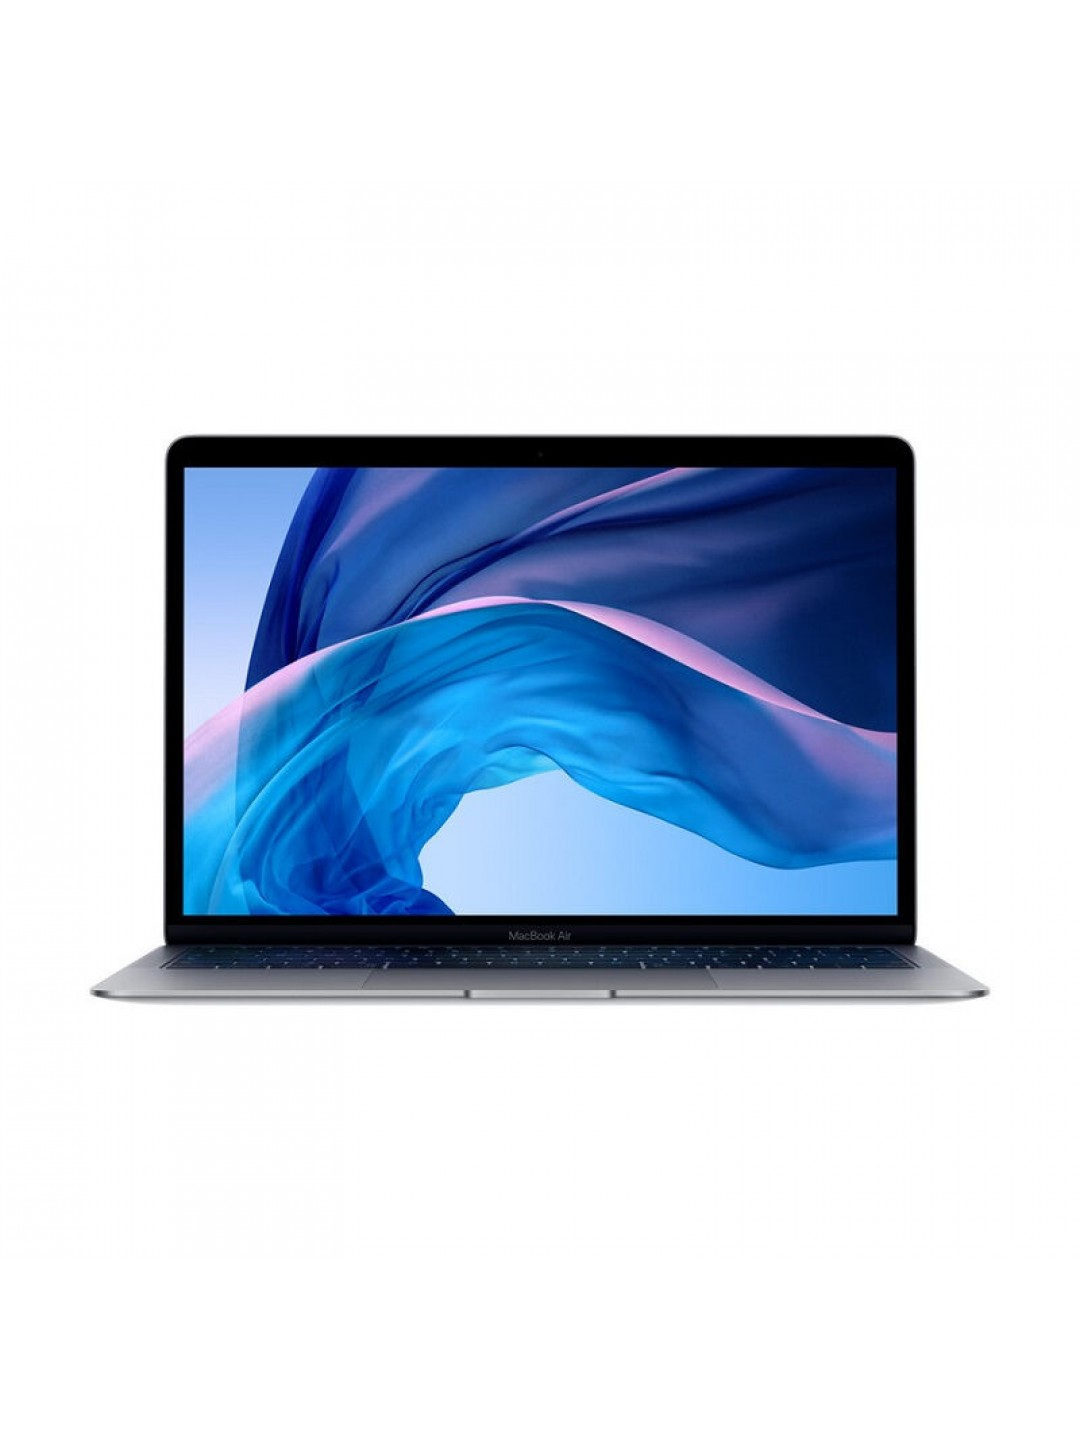 Laptop Macbook Air 2019 MVFJ2 13 inch/1.6Ghz Dual Core i5/8GB/256GB/ Intel UHD Graphics 617